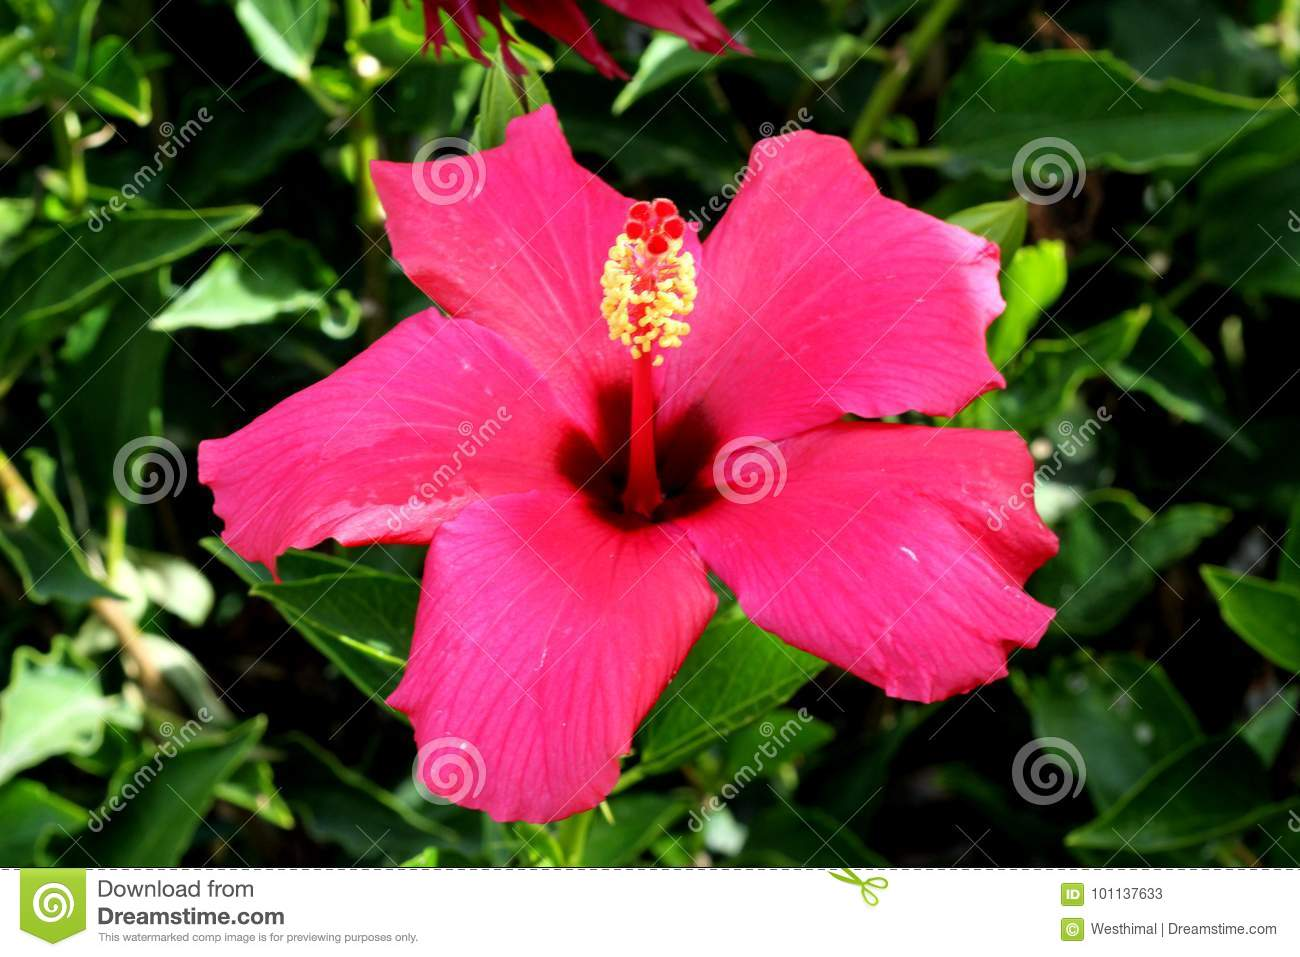 Hibiscus rosa sinensis painted lady painted lady tropical hibiscus rosa sinensis painted lady painted lady tropical hibiscus evergreen shrub with large rosy red pink flowers with red center petals wavy edged izmirmasajfo